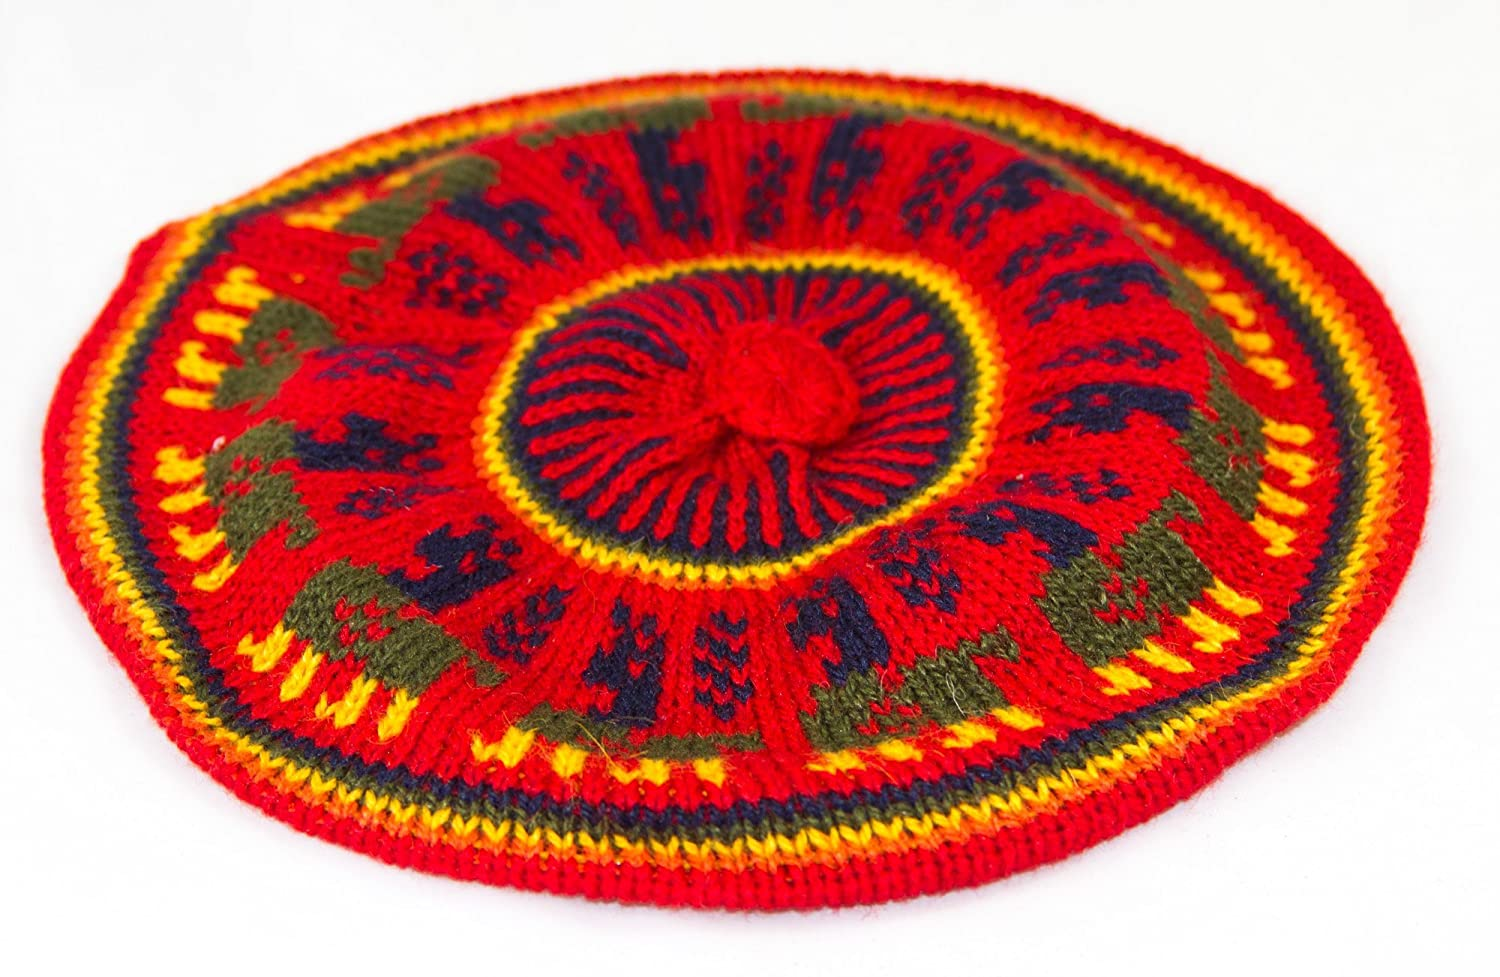 Tumia LAC Wool Multicoloured Beret With Llama pattern - Fair trade and hand-knitted in Bolivia. One Size